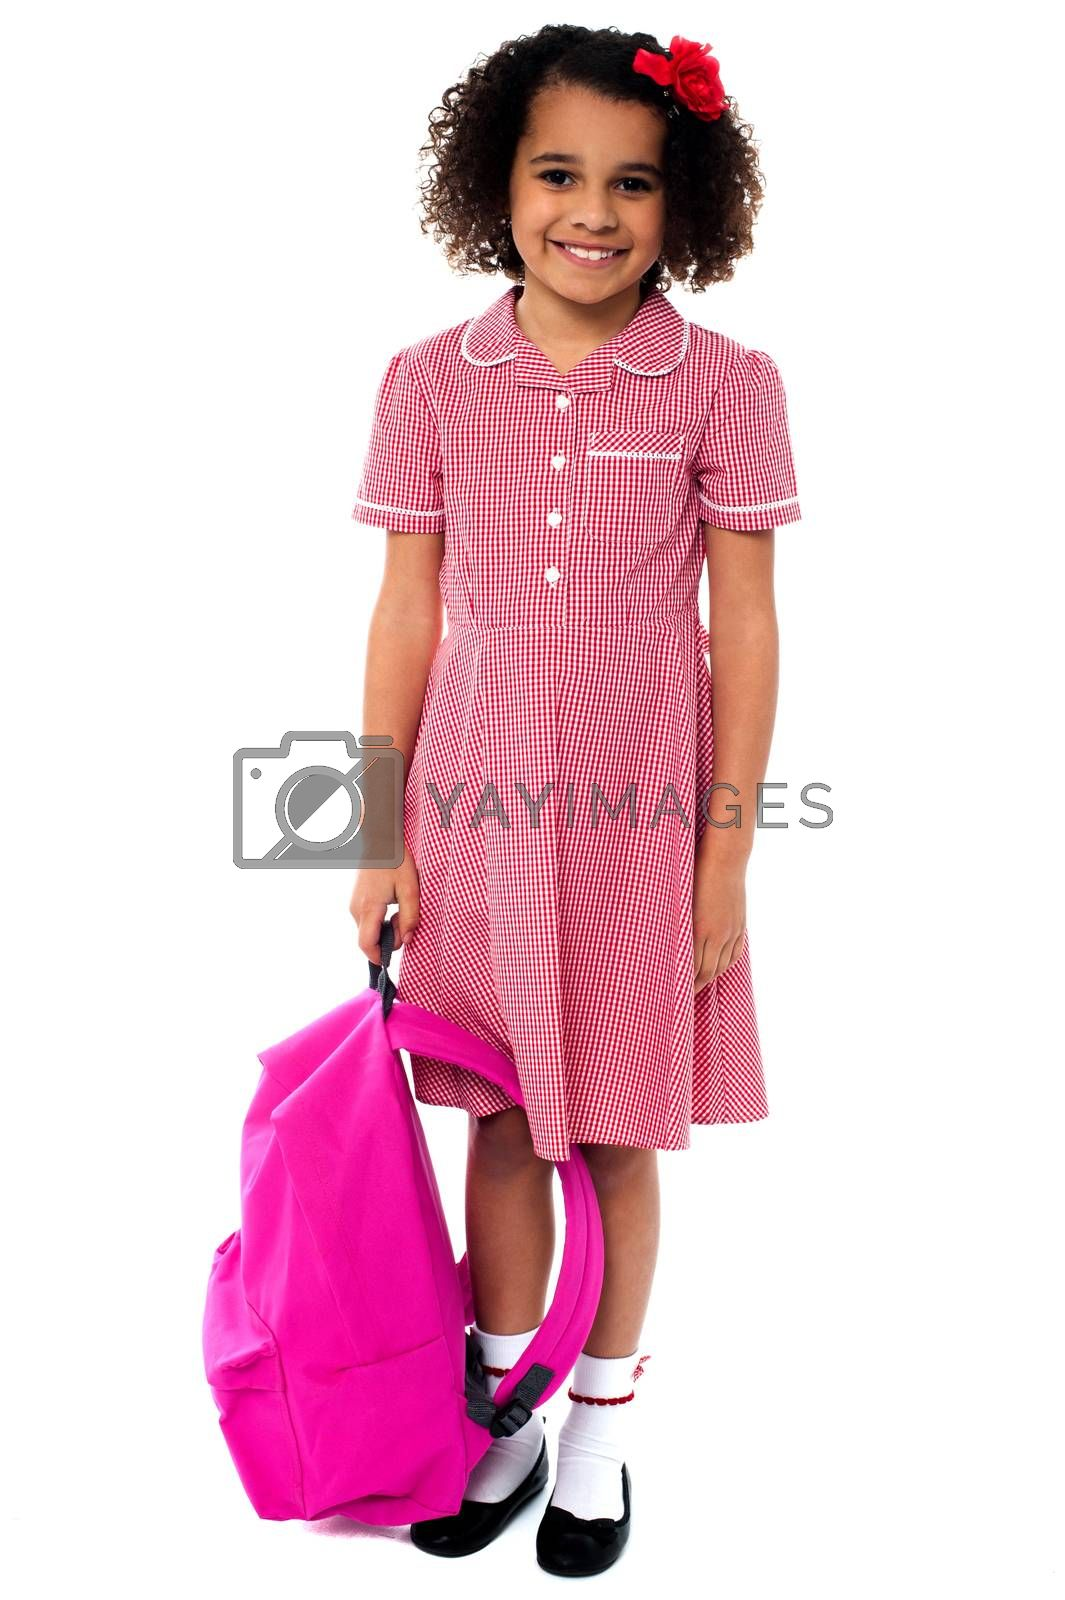 Smiling school girl posing with backpack over white